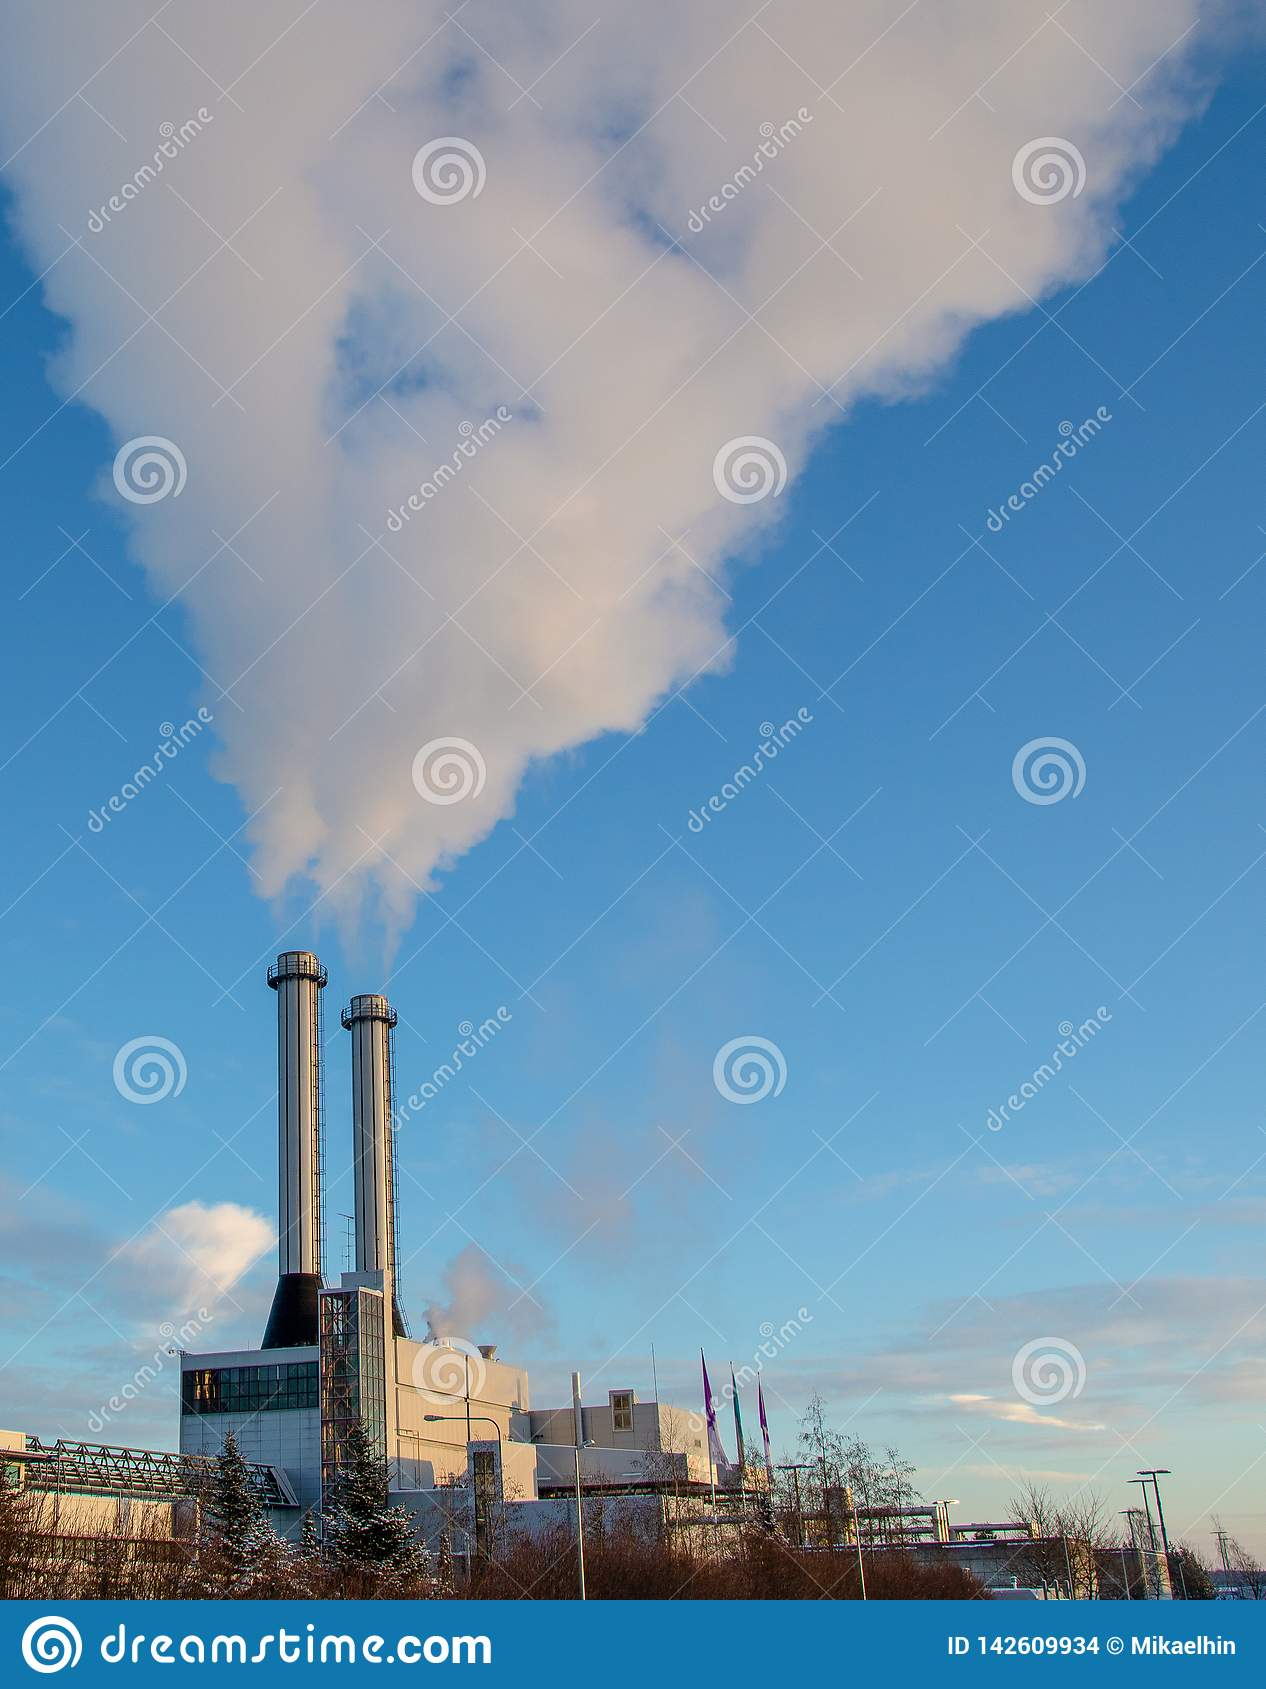 Smoke exiting two chimneys is winter